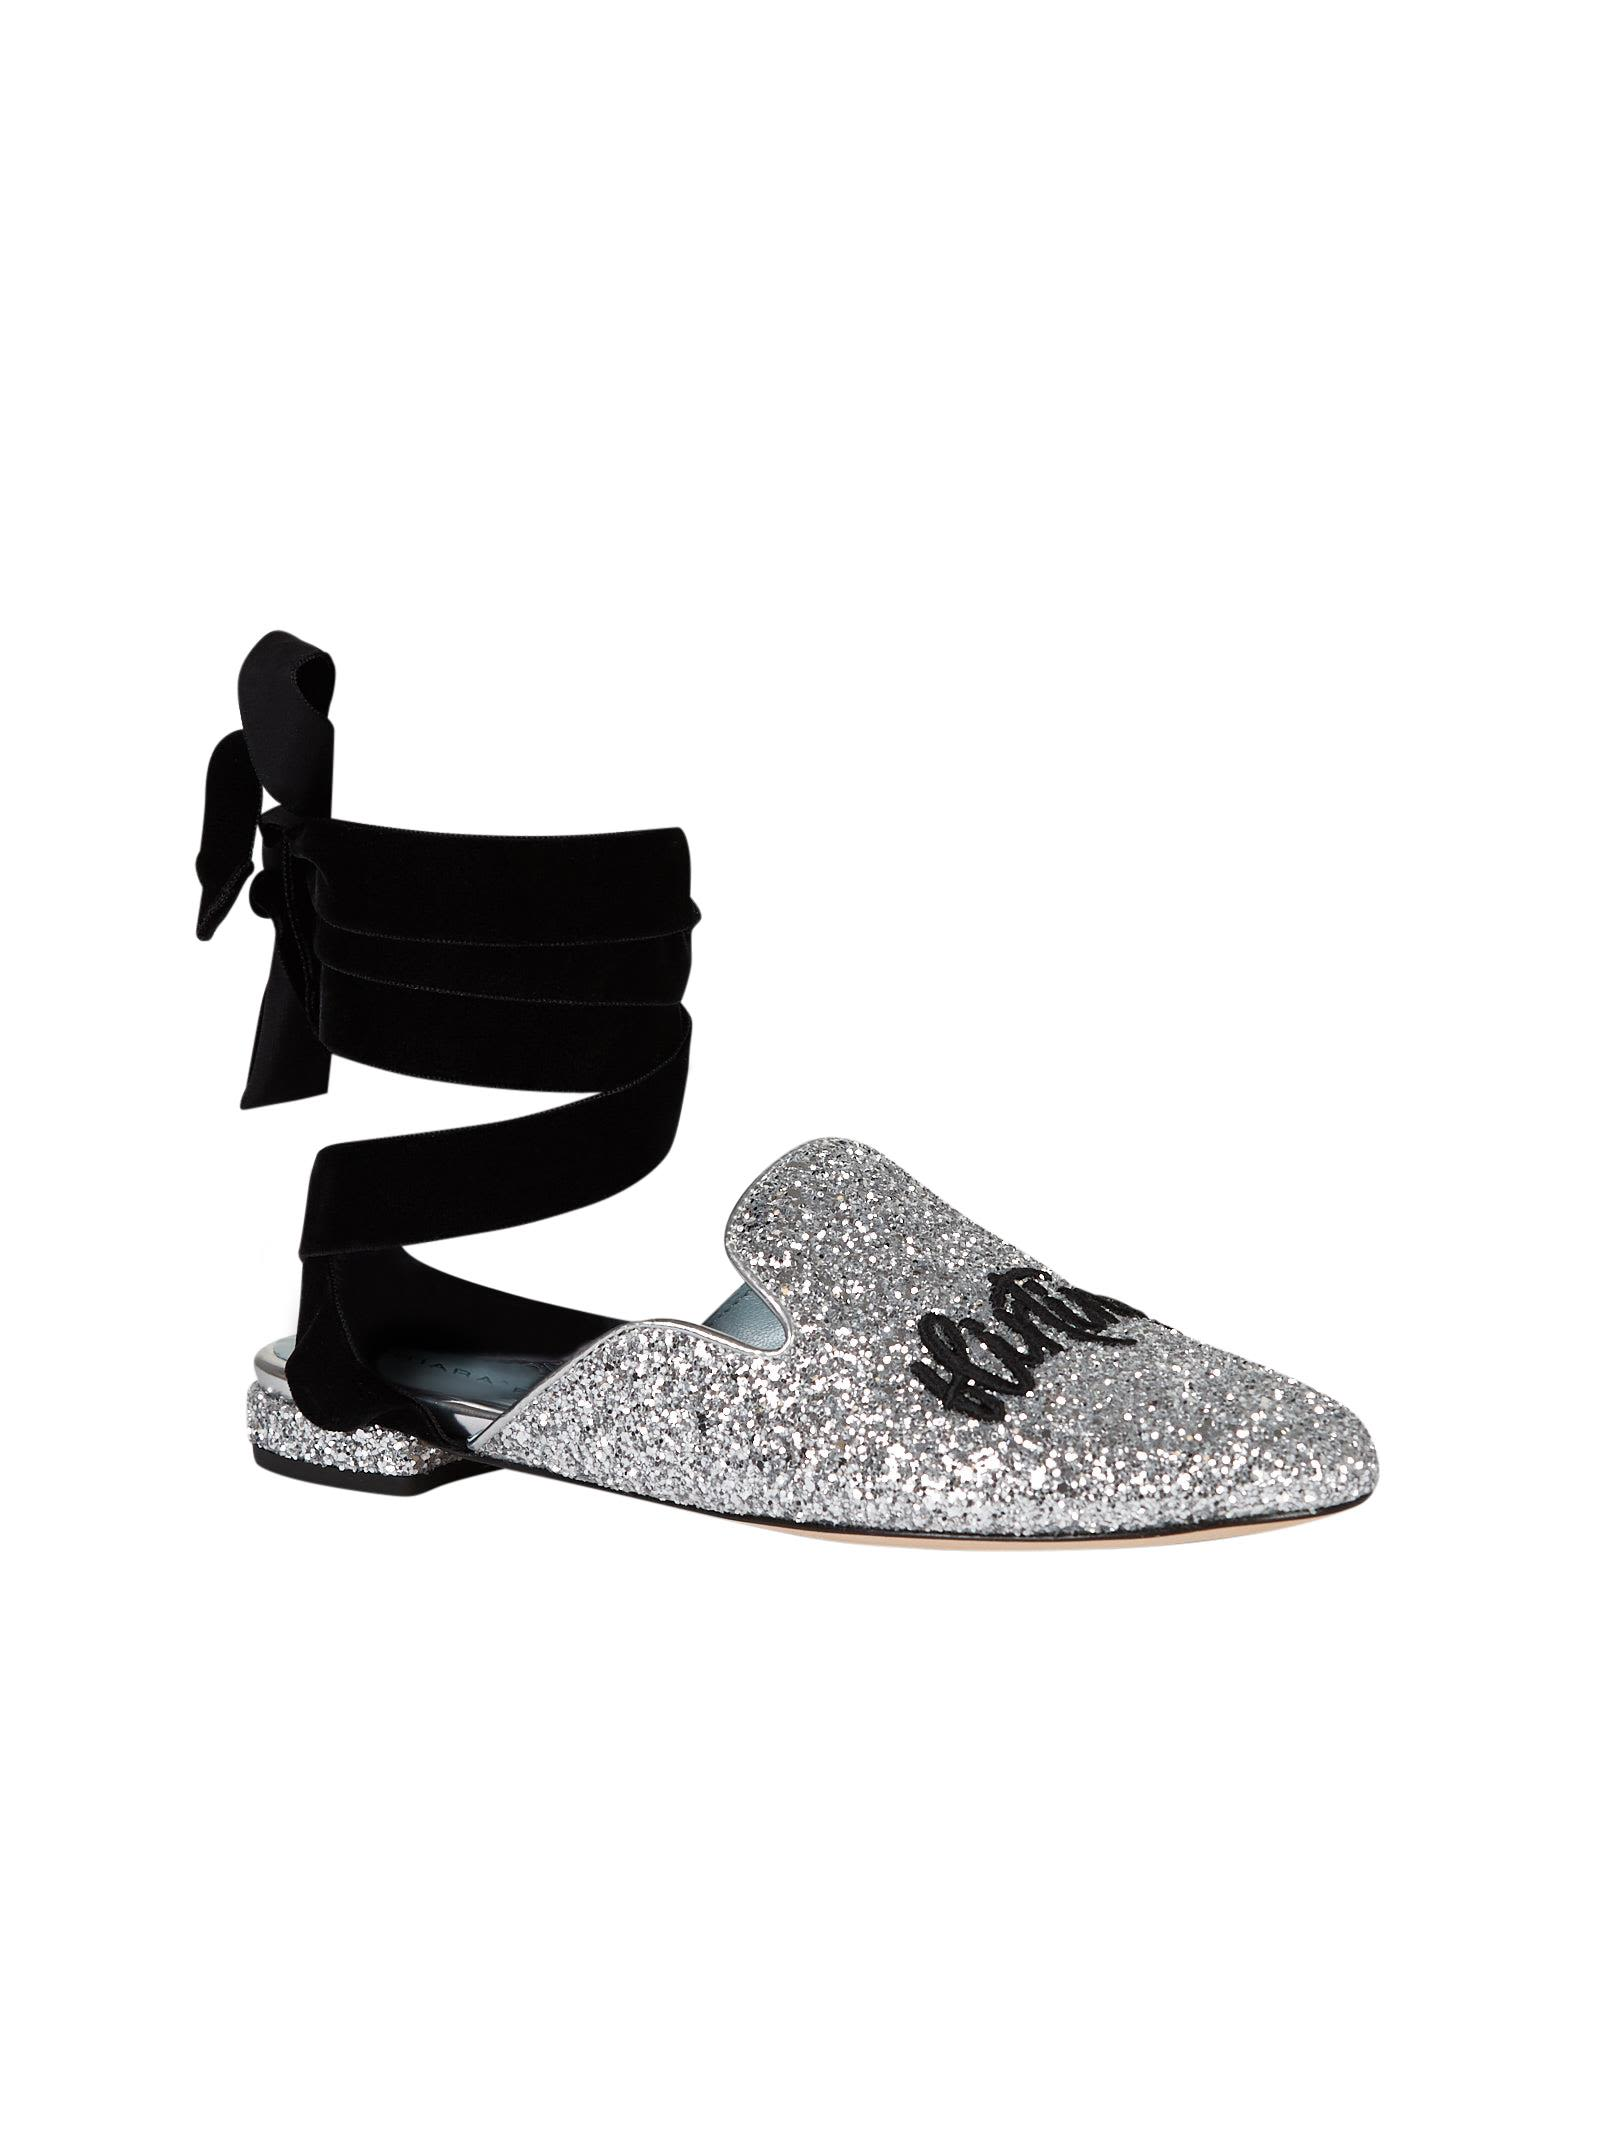 Chiara Ferragni Suited Lace-up Mules Real For Sale Extremely Free Shipping Pay With Visa Affordable For Sale Choice For Sale Yum0zVnAb